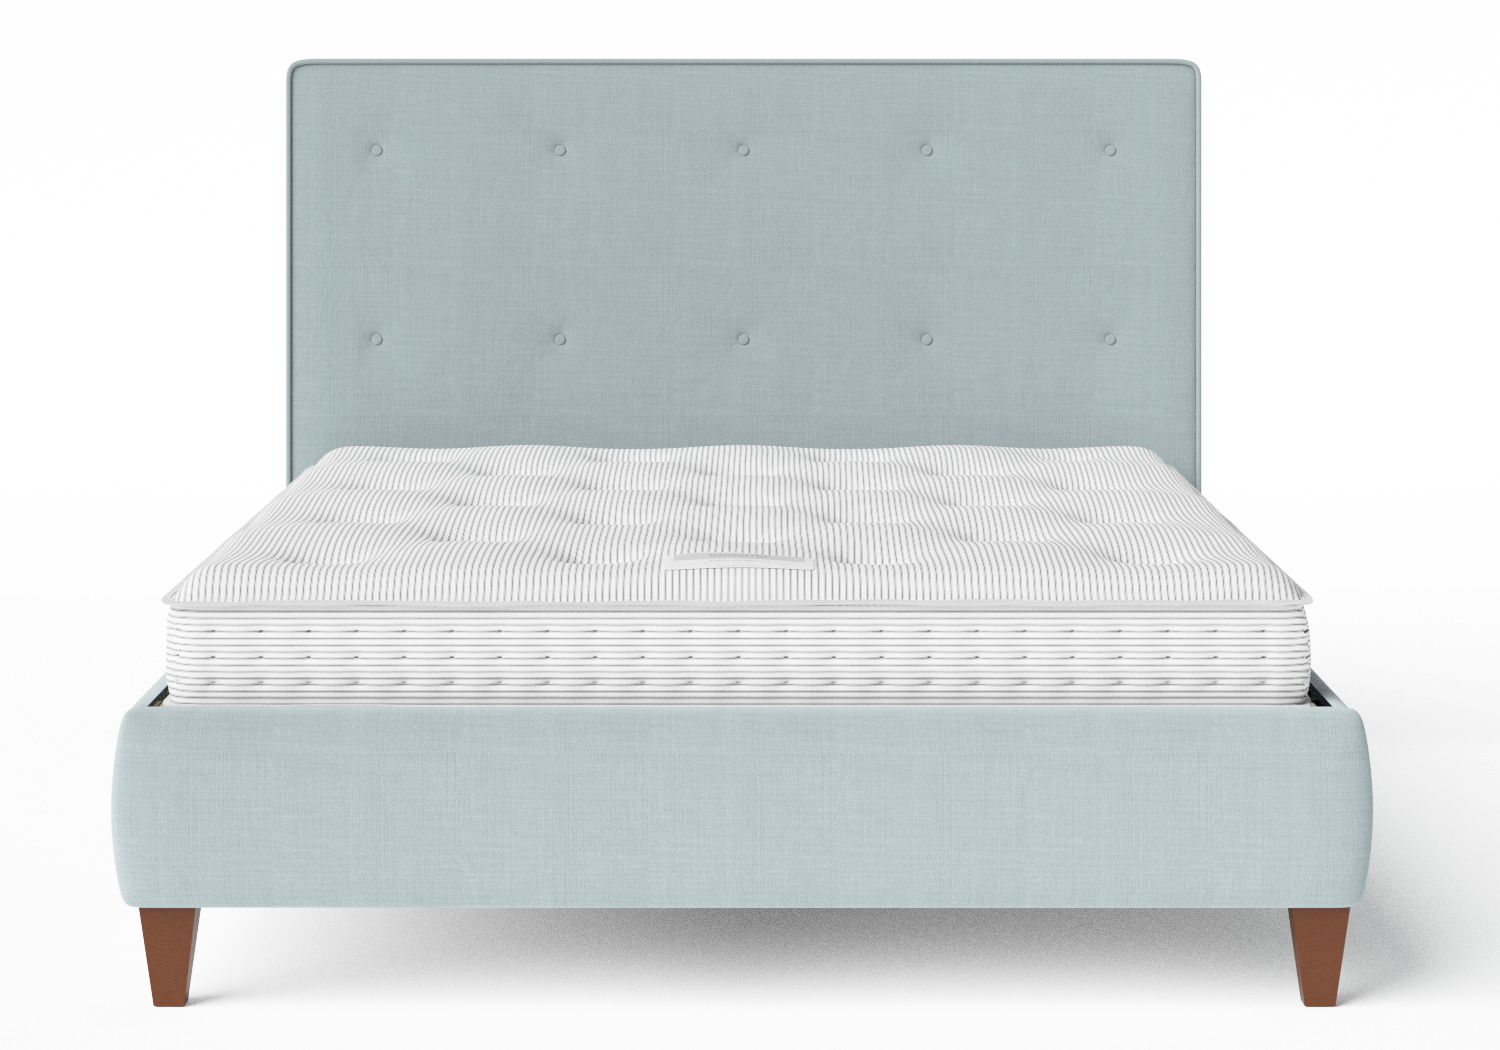 Yushan Upholstered Bed in Wedgewood fabric with buttoning shown with Juno 1 mattress